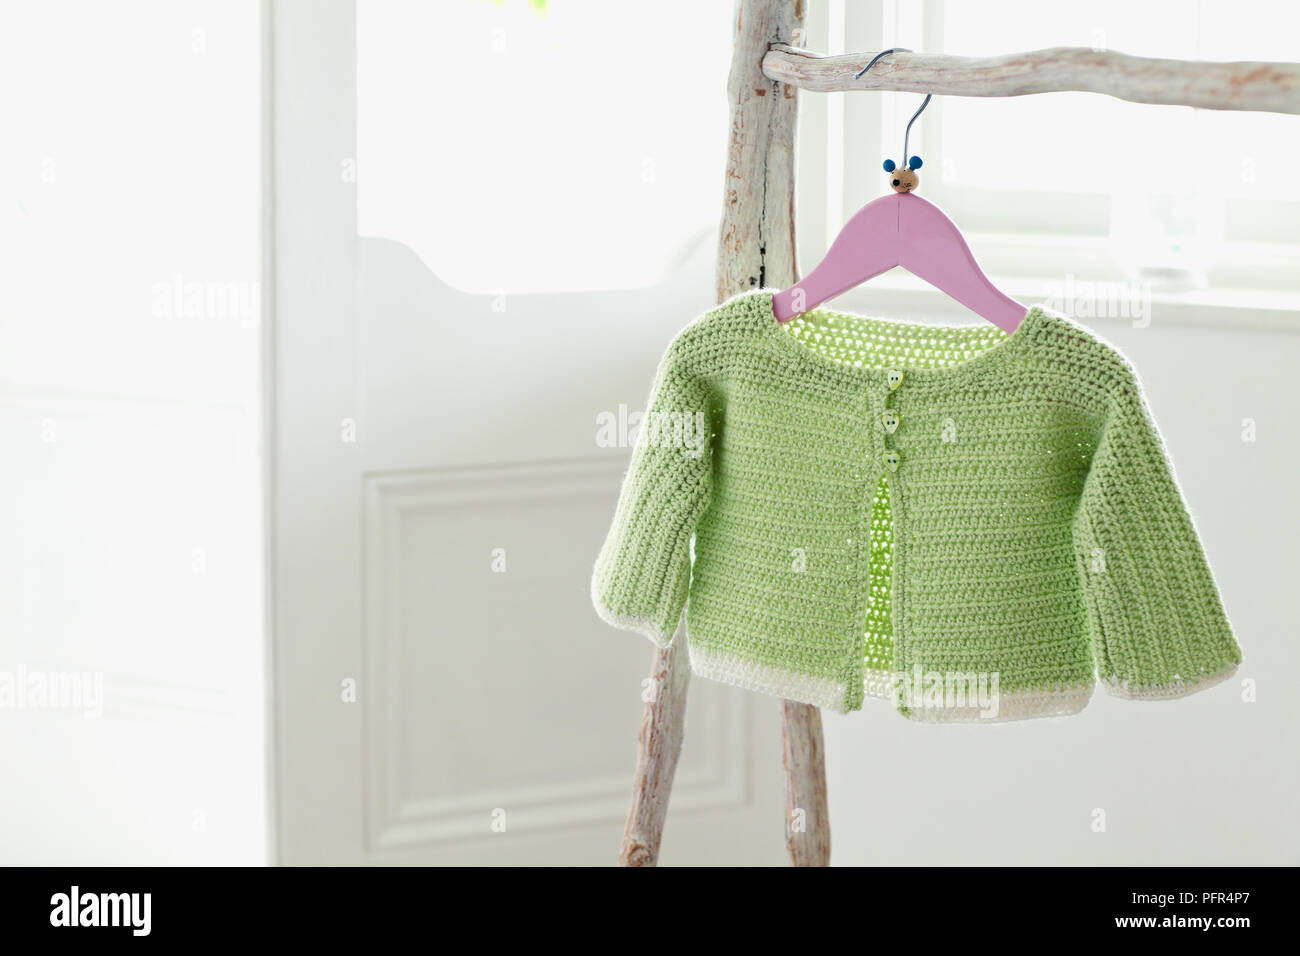 Crocheted Green Babys Cardigan With White Hem On Clothes Hanger